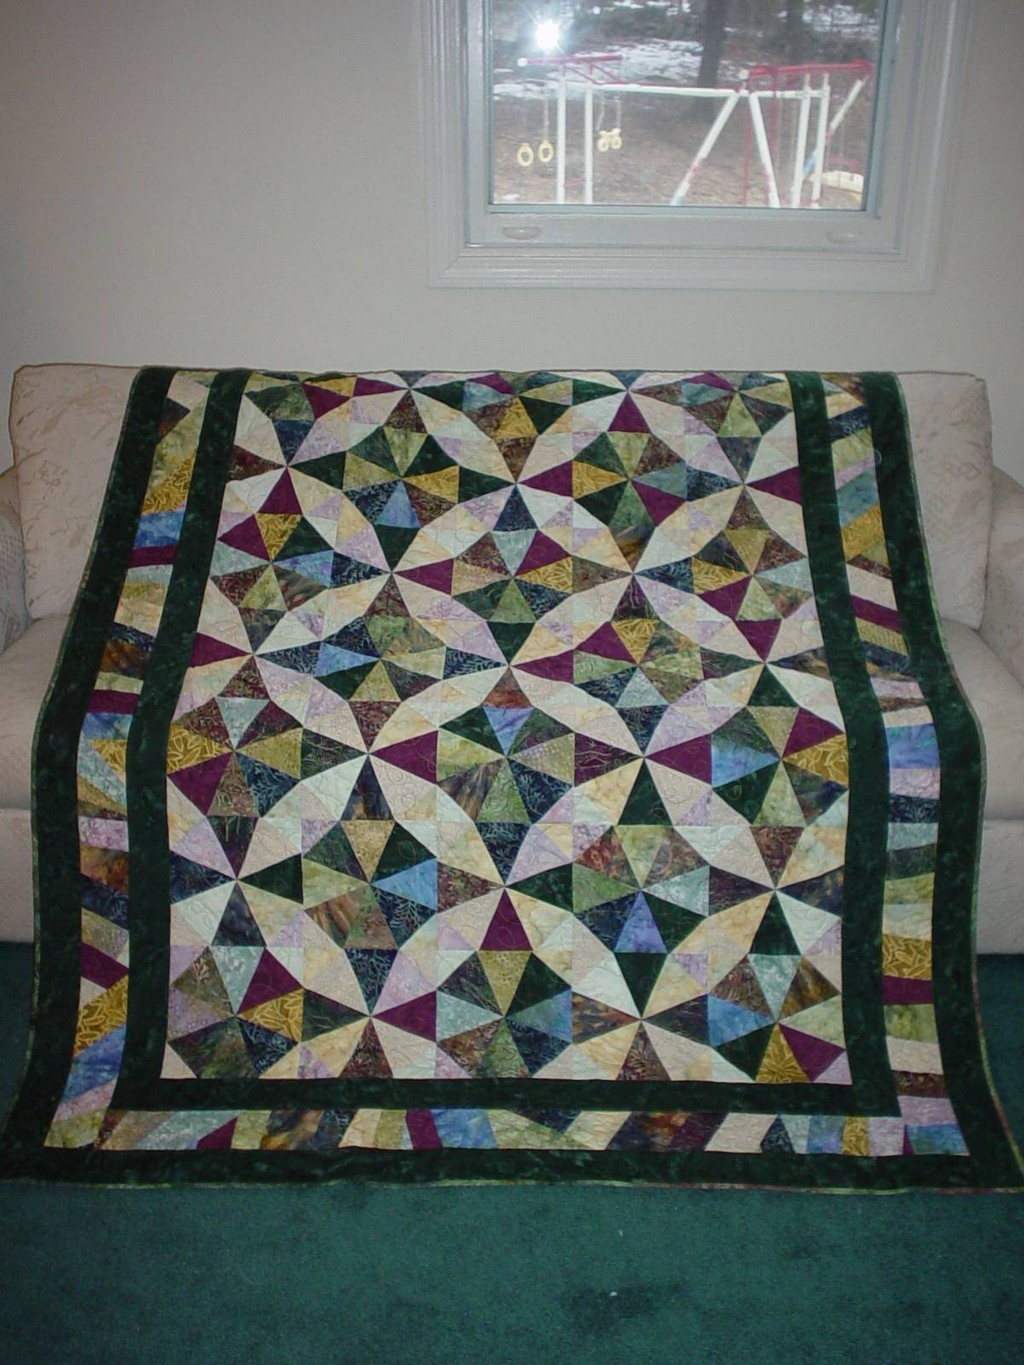 quilts for kids, crown royal quilts, black and white quilts, patchwork quilts